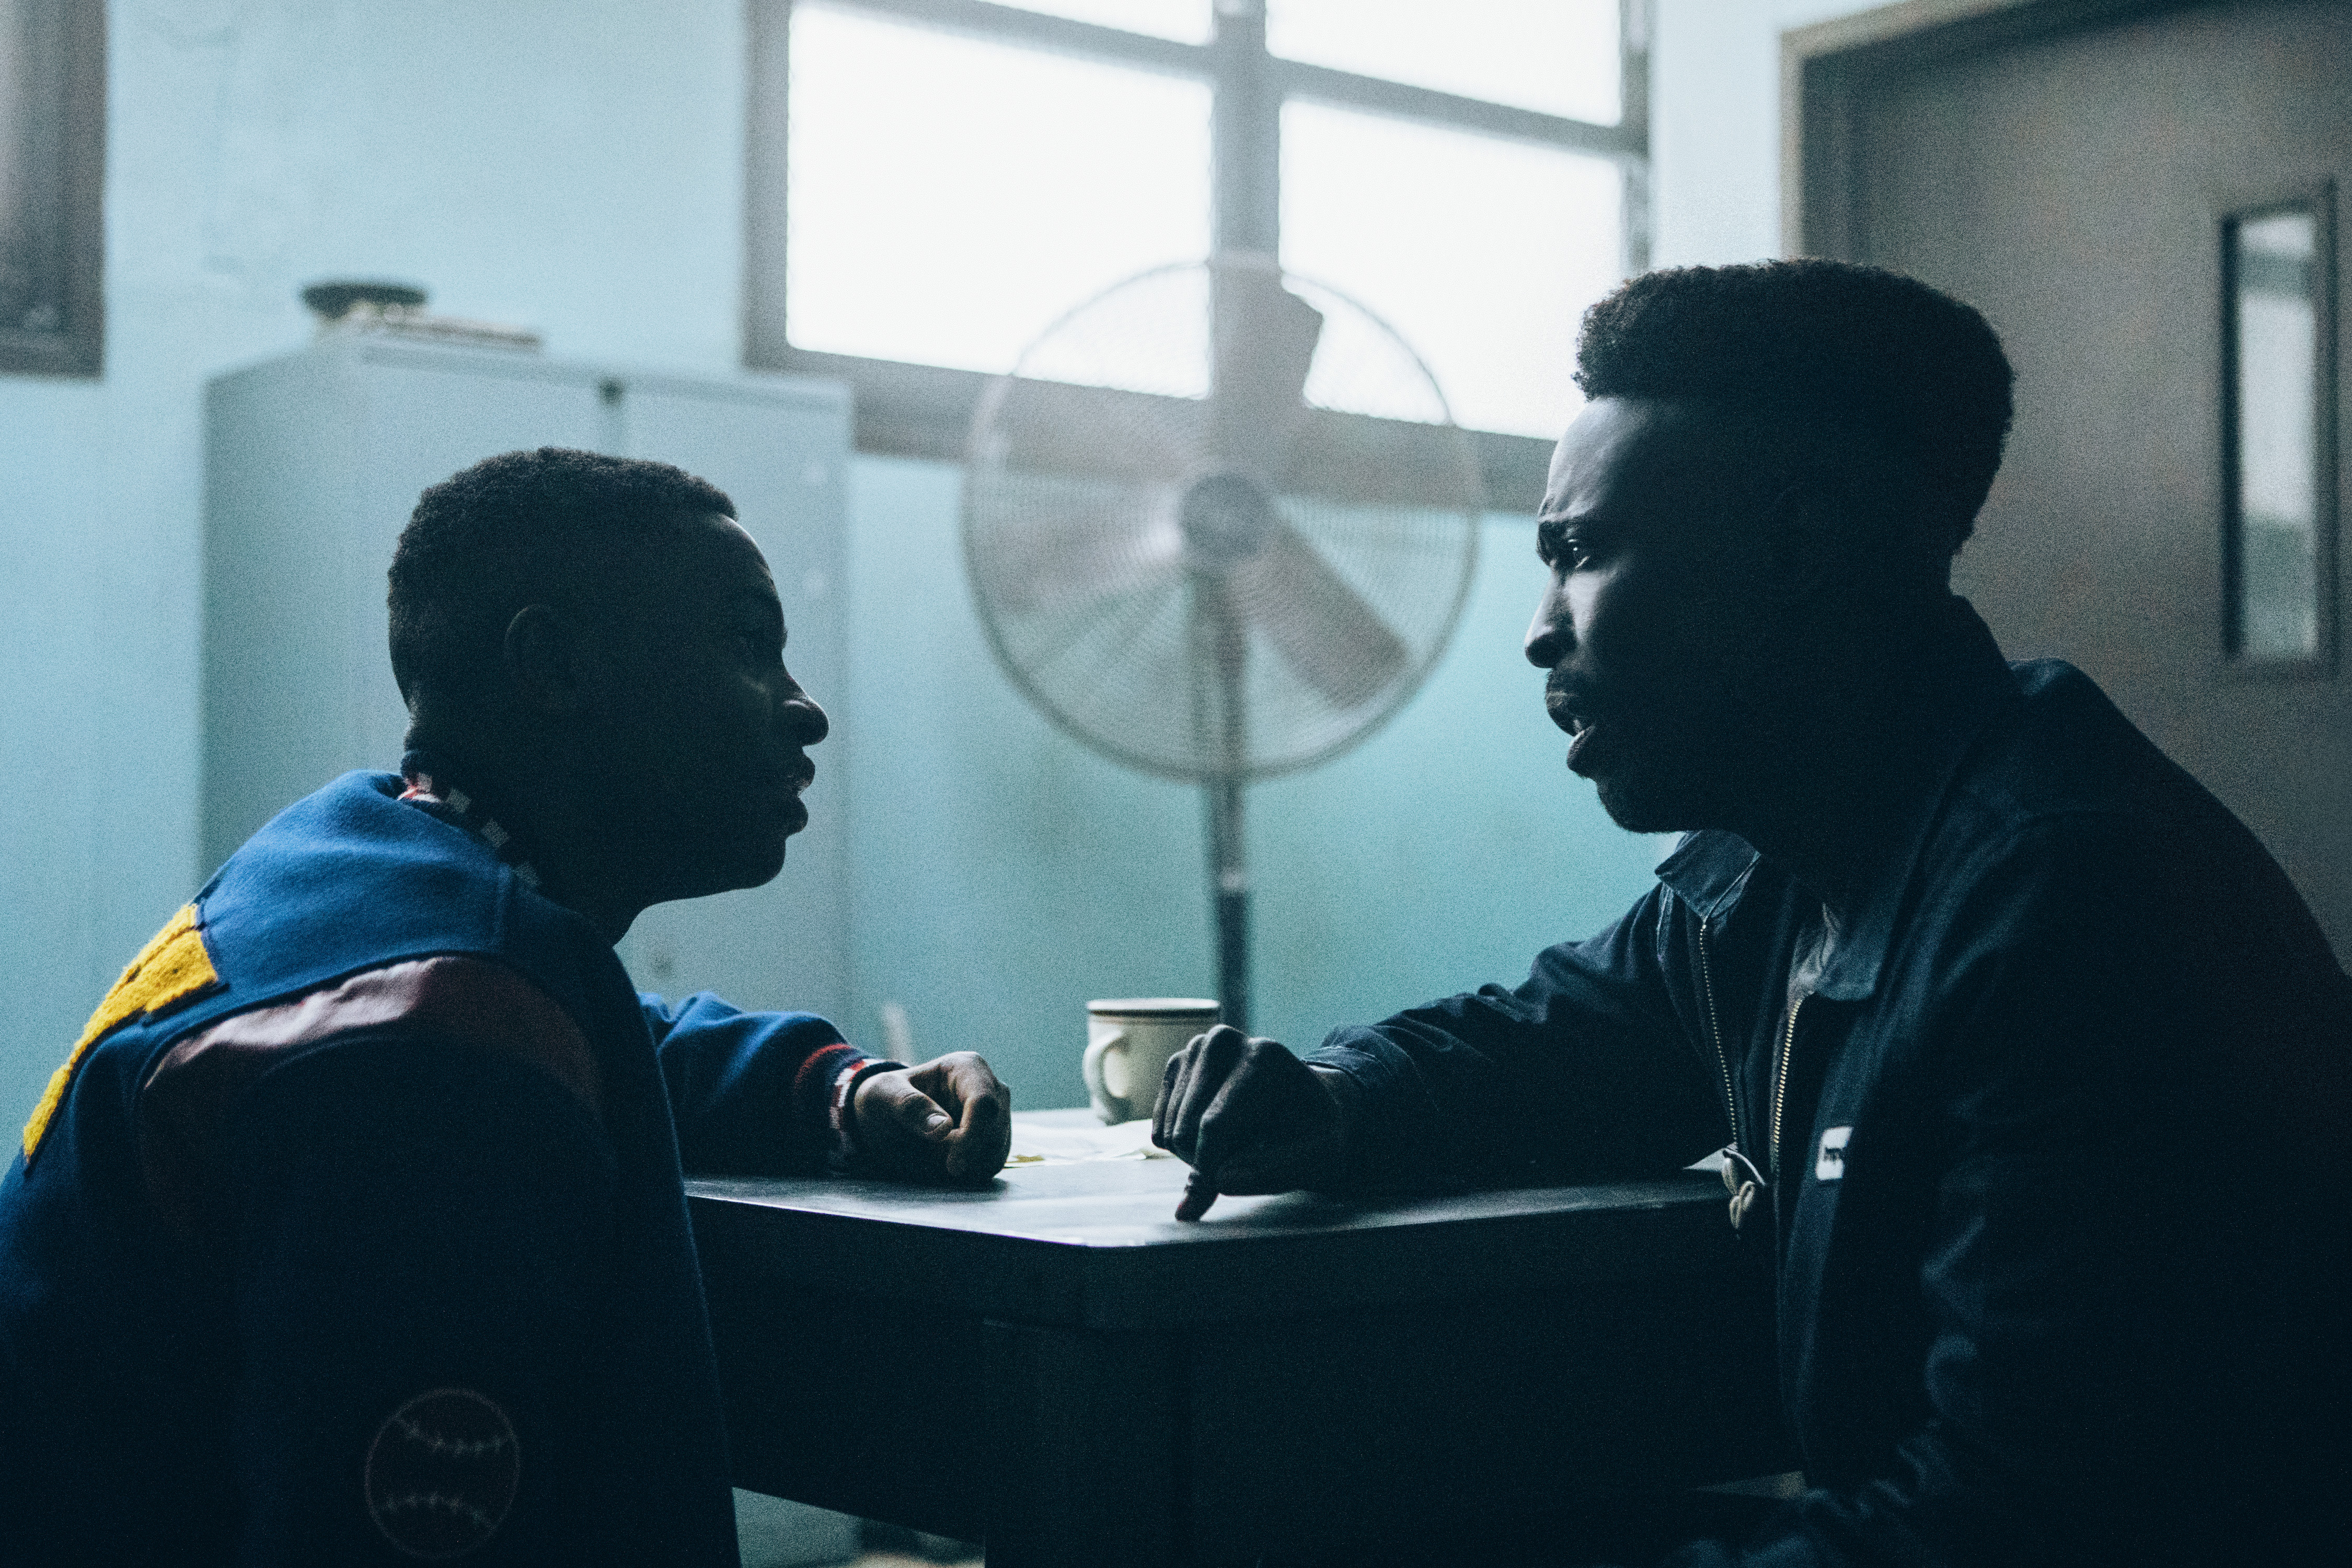 In 'When They See Us,' Ava DuVernay shows the horrors that swallowed